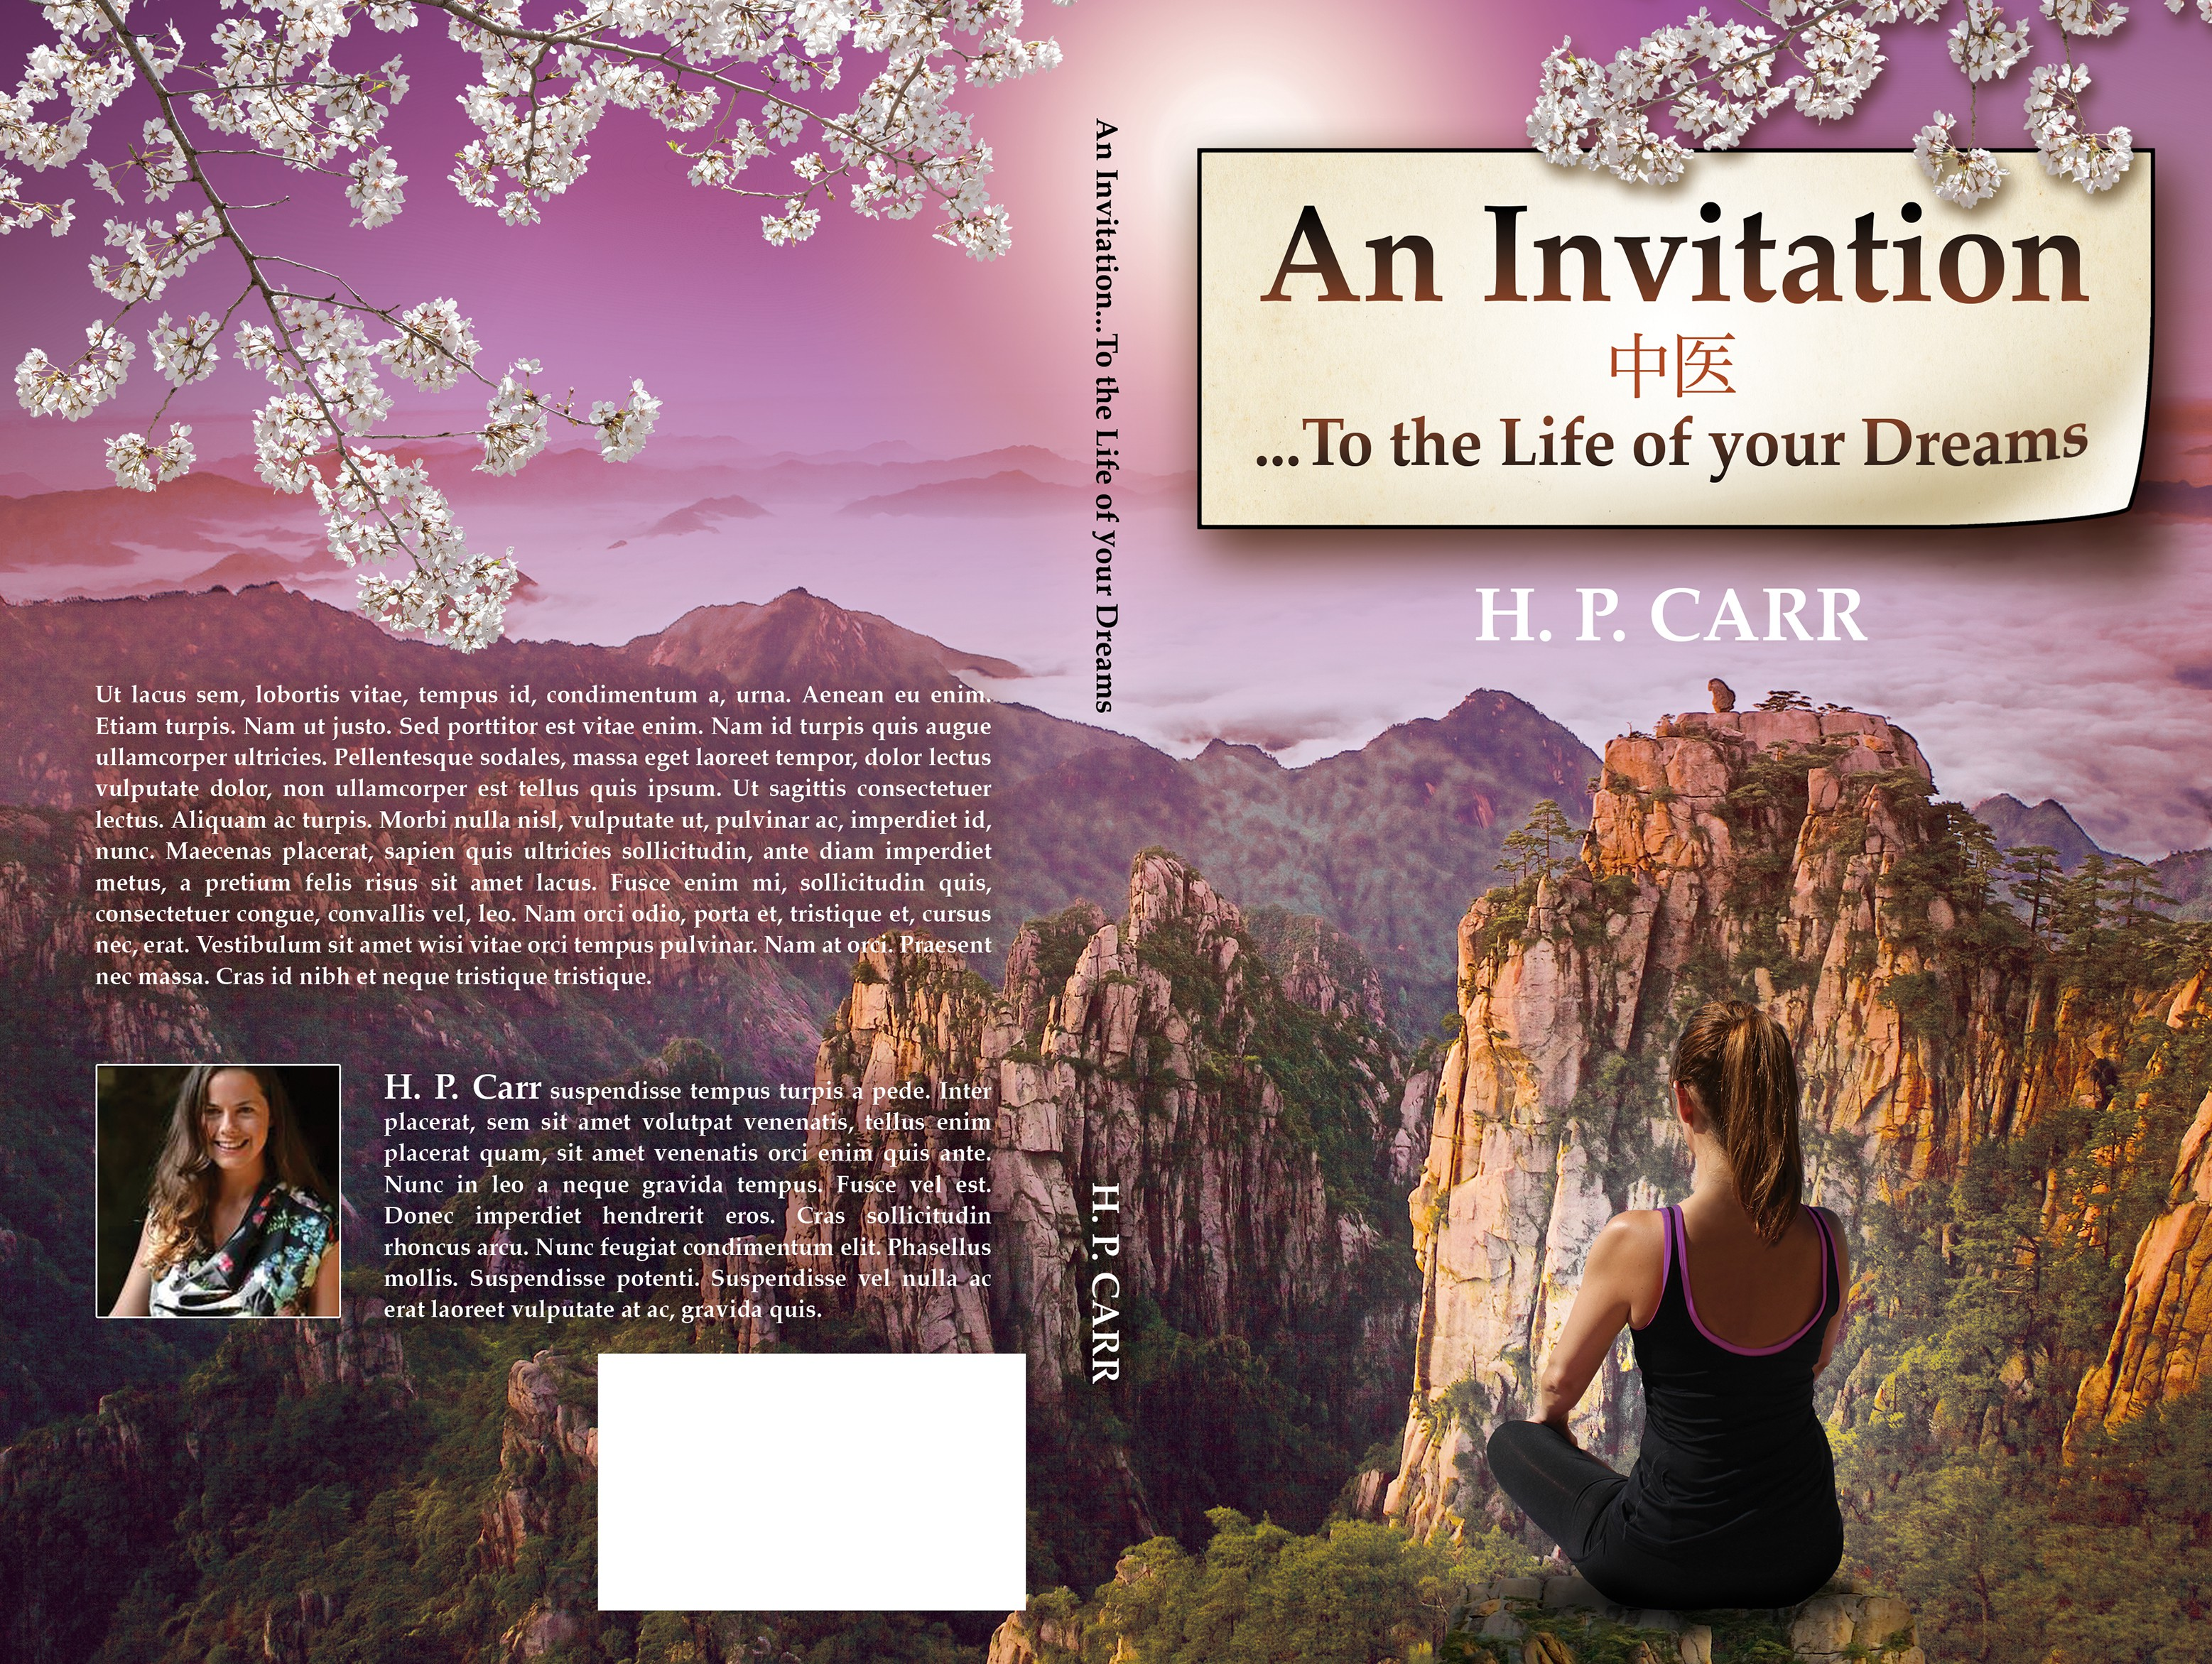 An Invitation... to the life of your dreams!